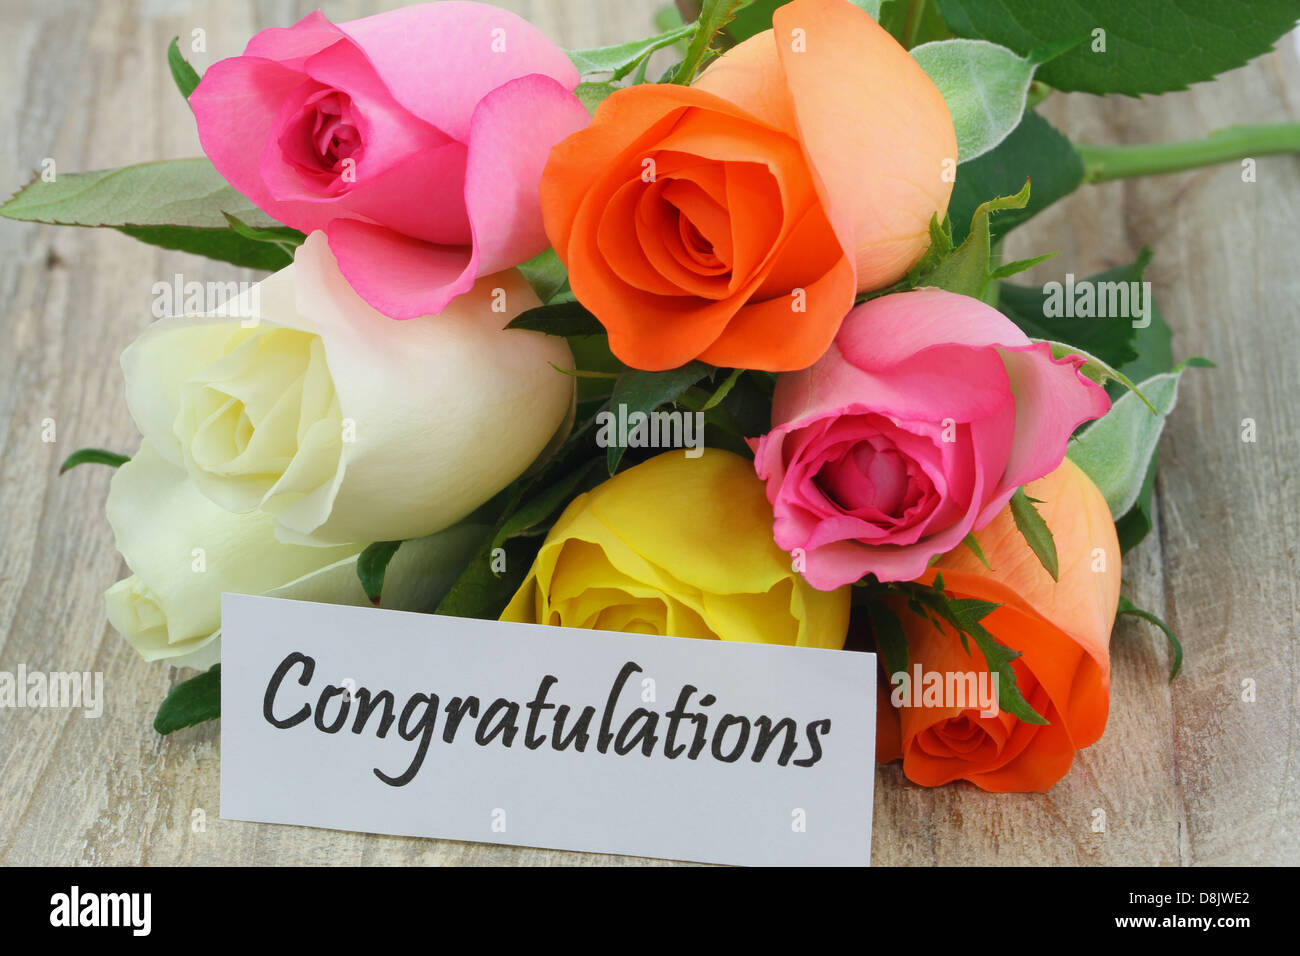 Congratulations Note With Colorful Roses Bouquet On Wooden